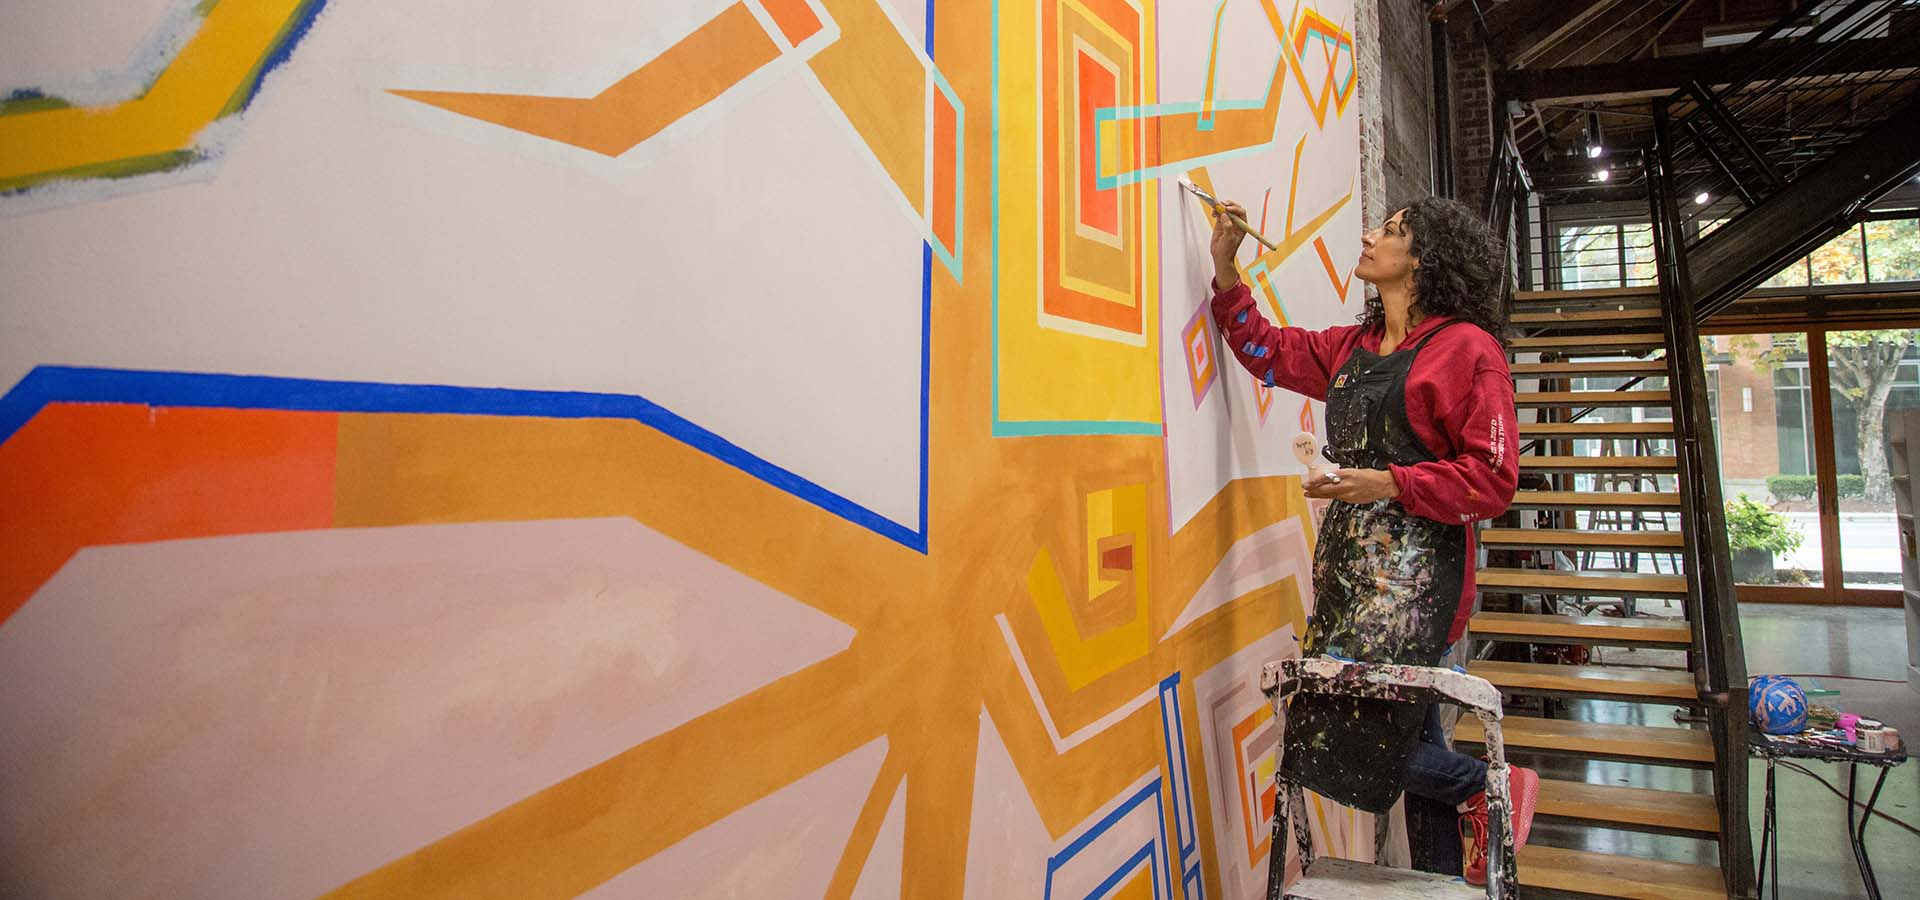 Artist Marela Zacarías working on a painting with vibrant colors.